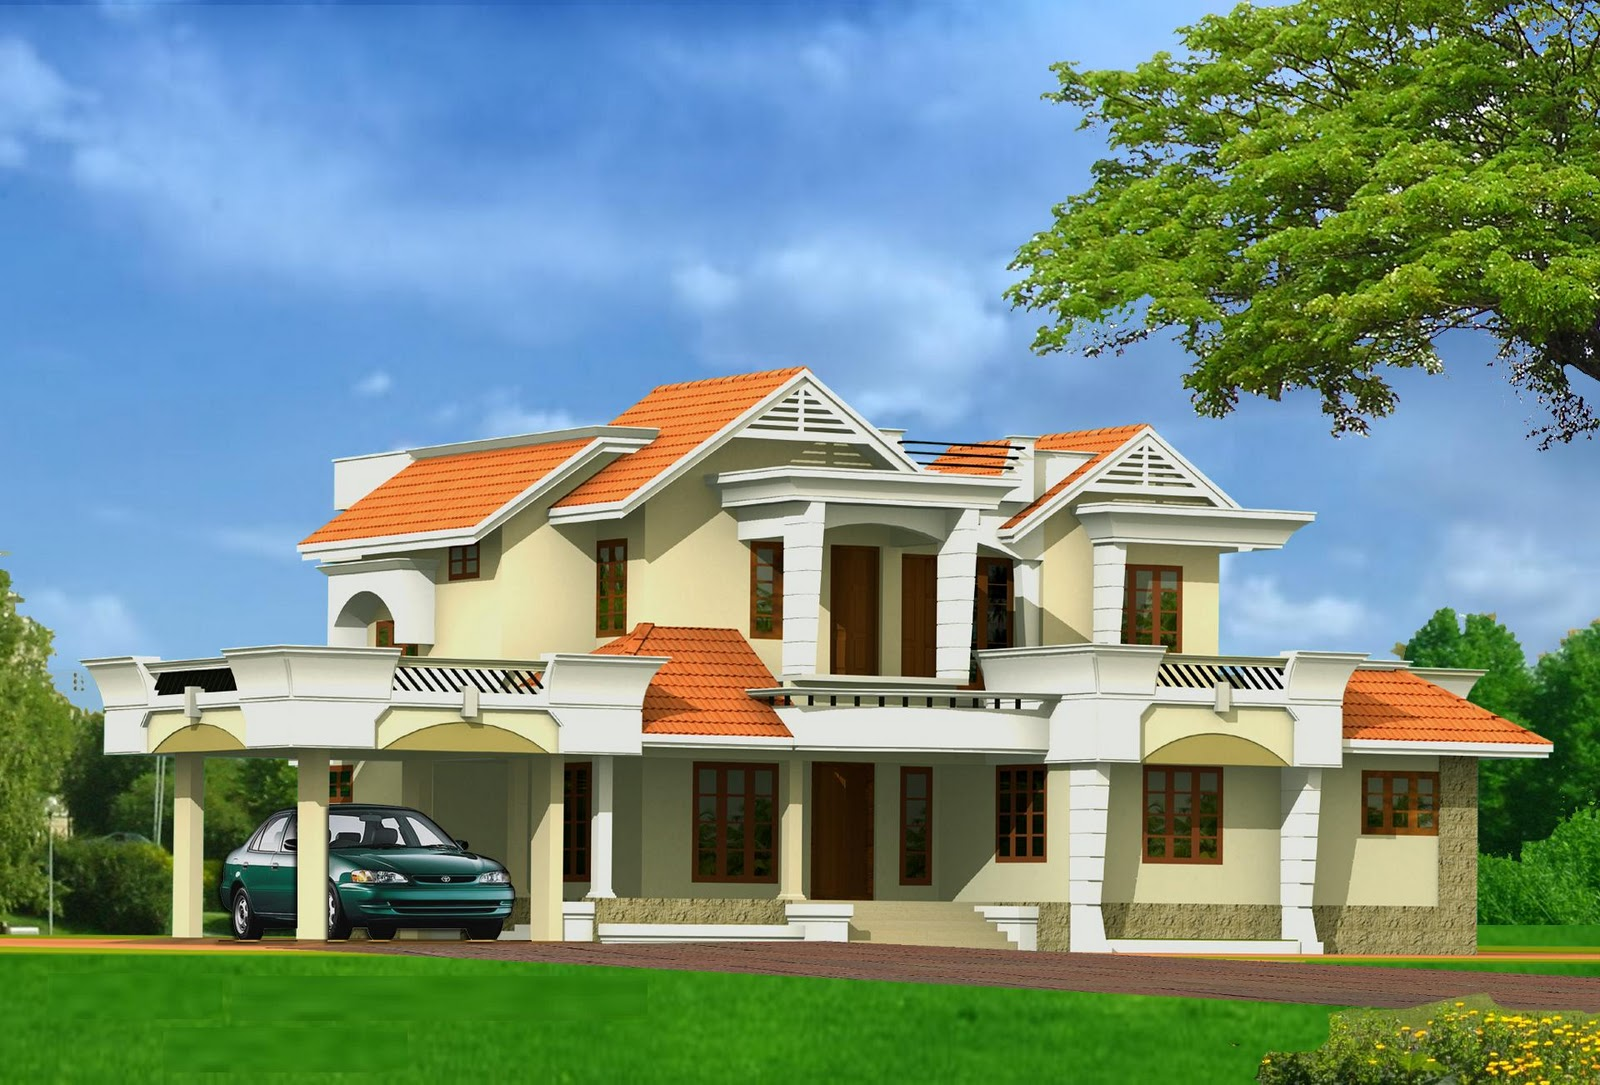 House plans and design architectural designs of for Residential home design